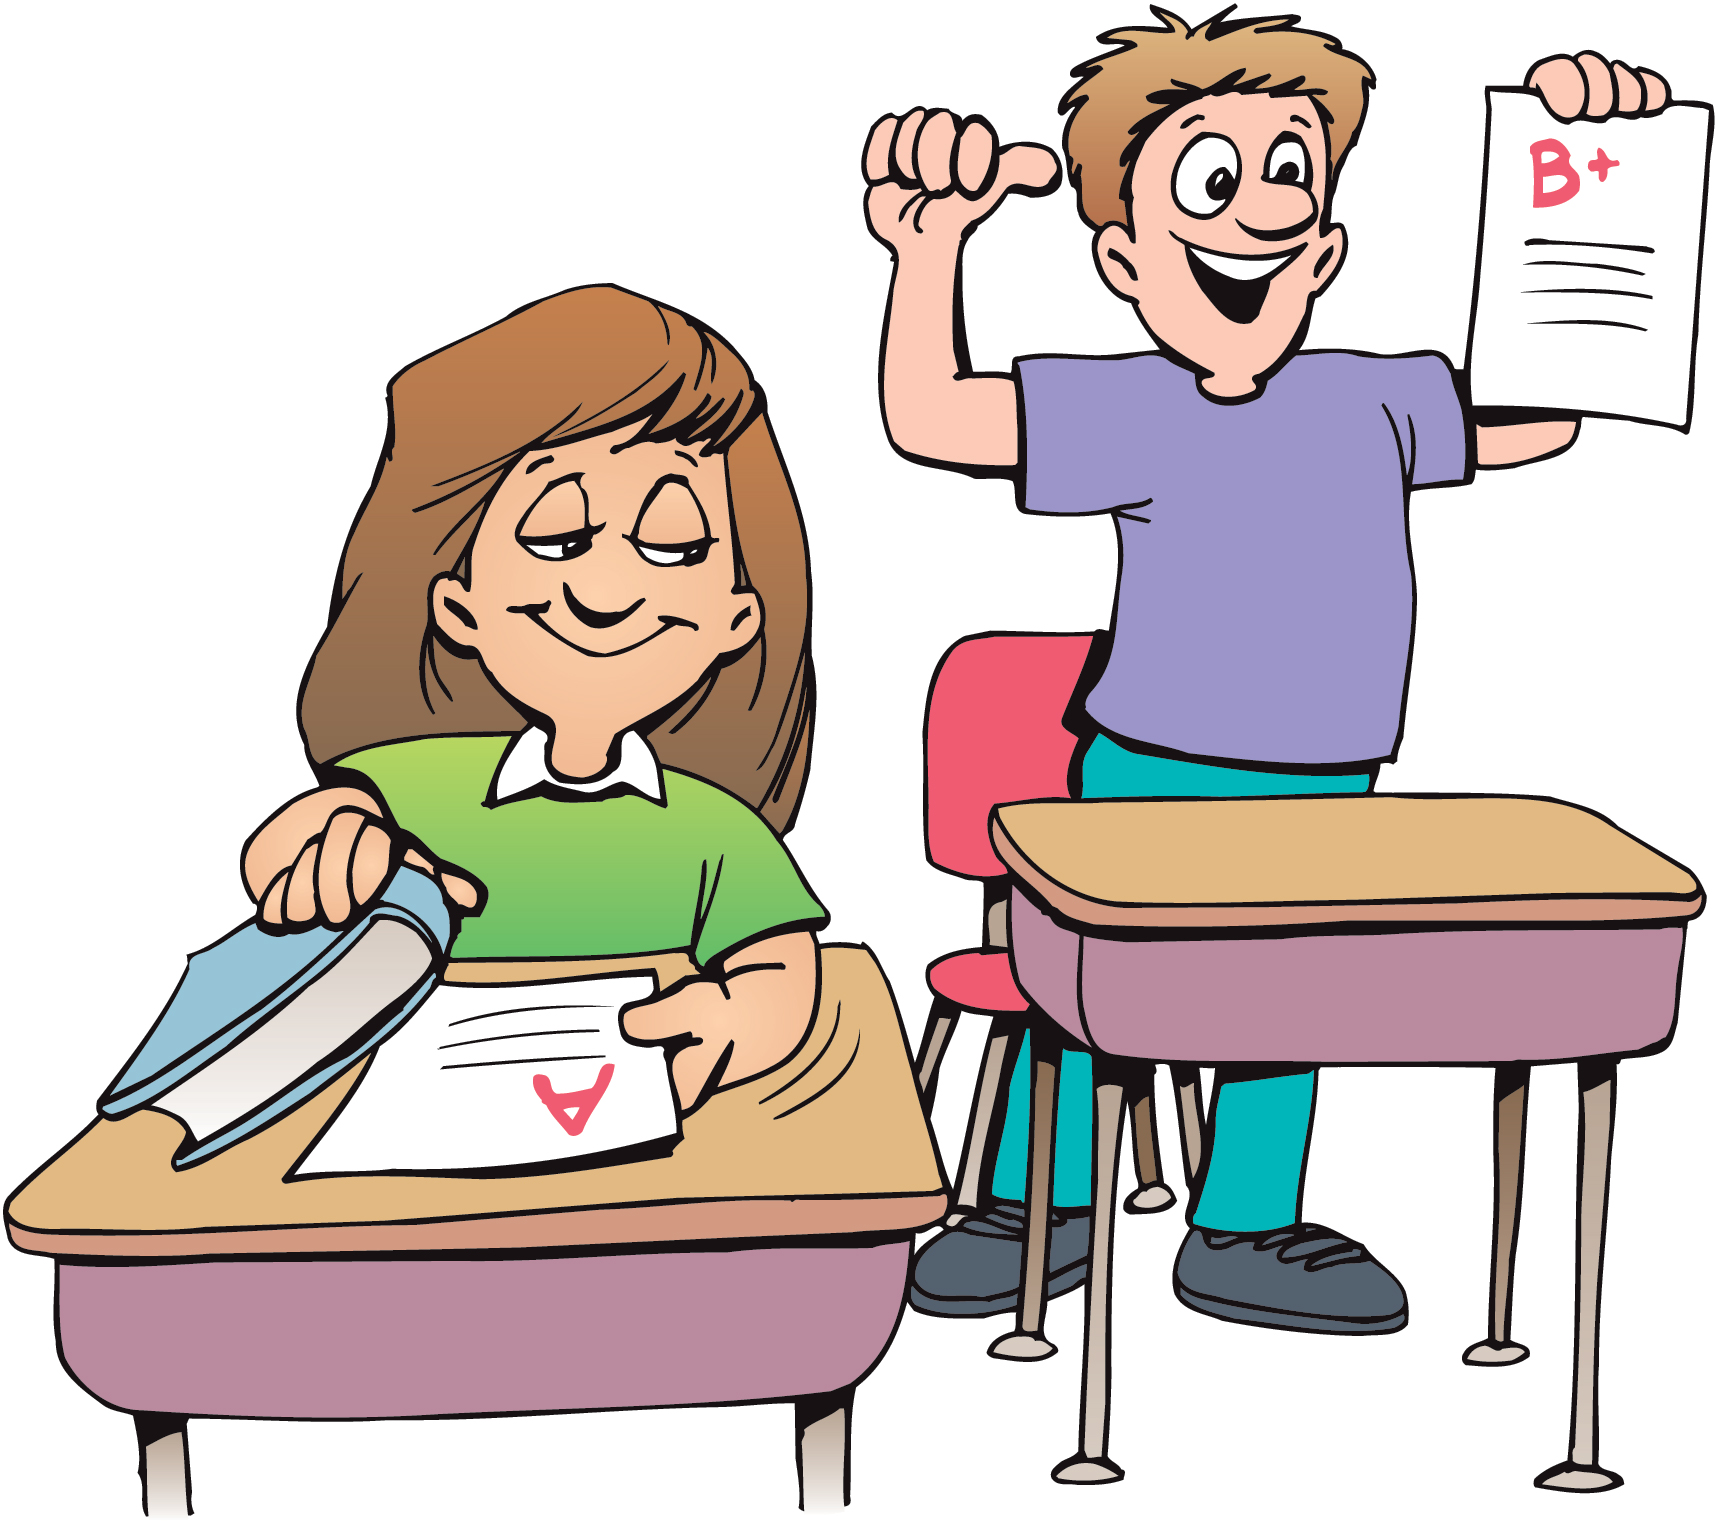 picture royalty free stock Free pictures of download. Students in class clipart.